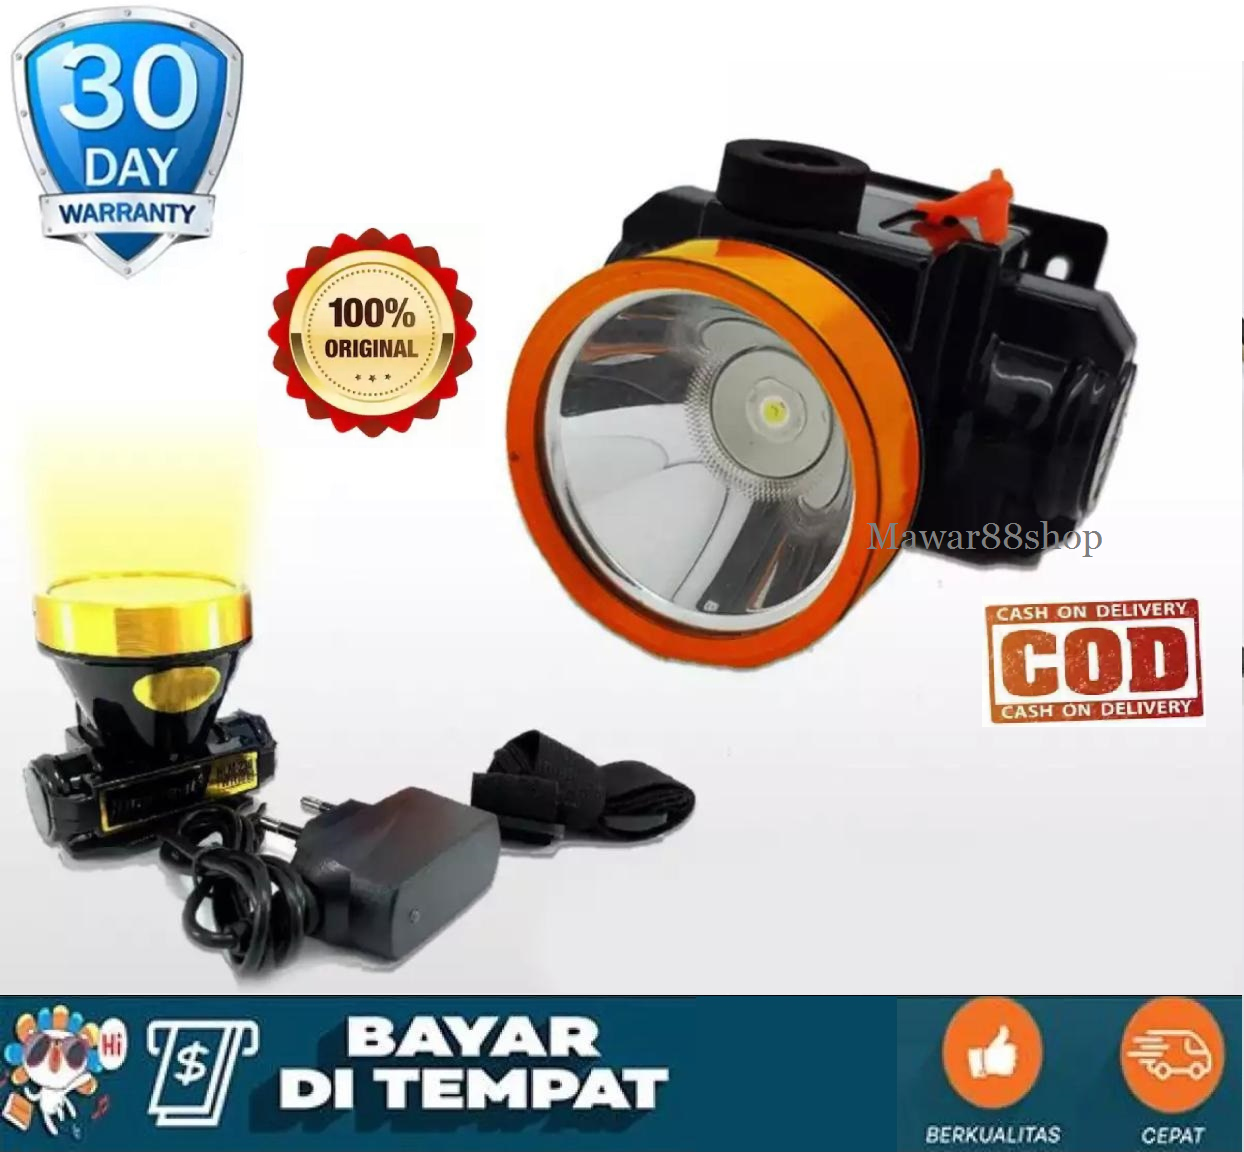 Senter Kepala LED Super Terang MUX 801 LED 10 Watt Rechargeable Headlamp Camping / Mawar88shop